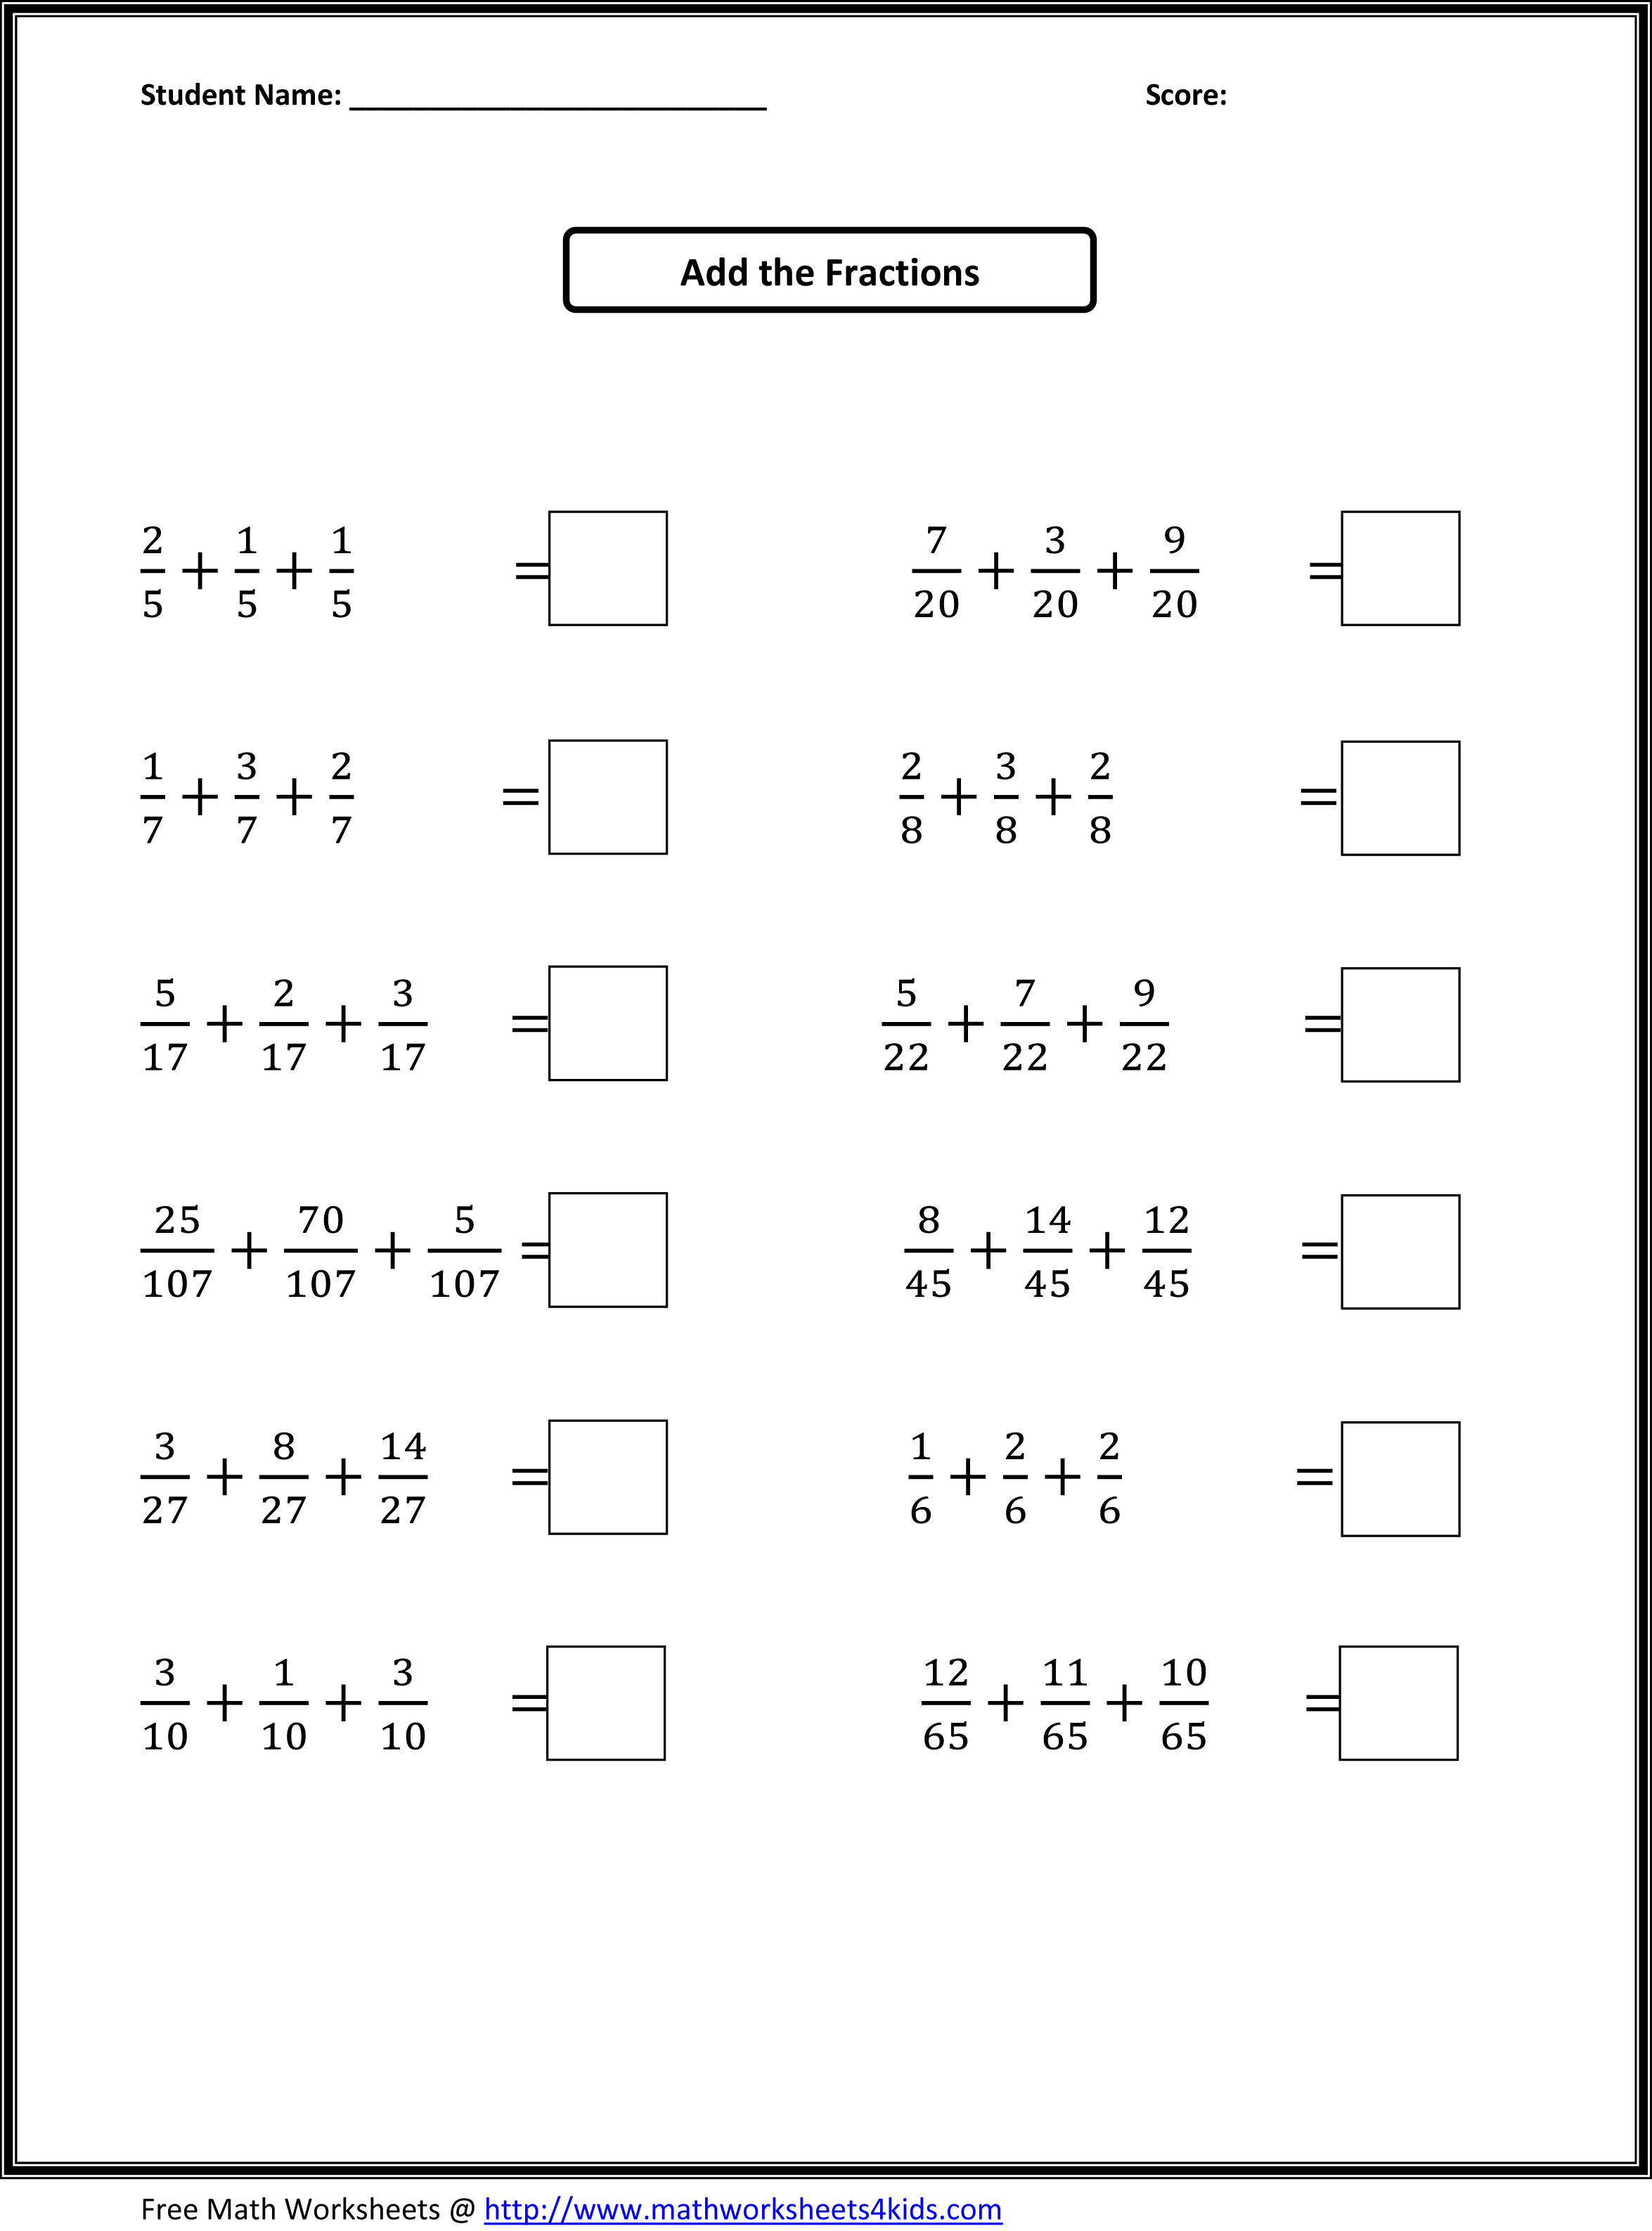 math worksheet : fraction worksheets grade 7  synhoff : 8th Grade Fraction Worksheets